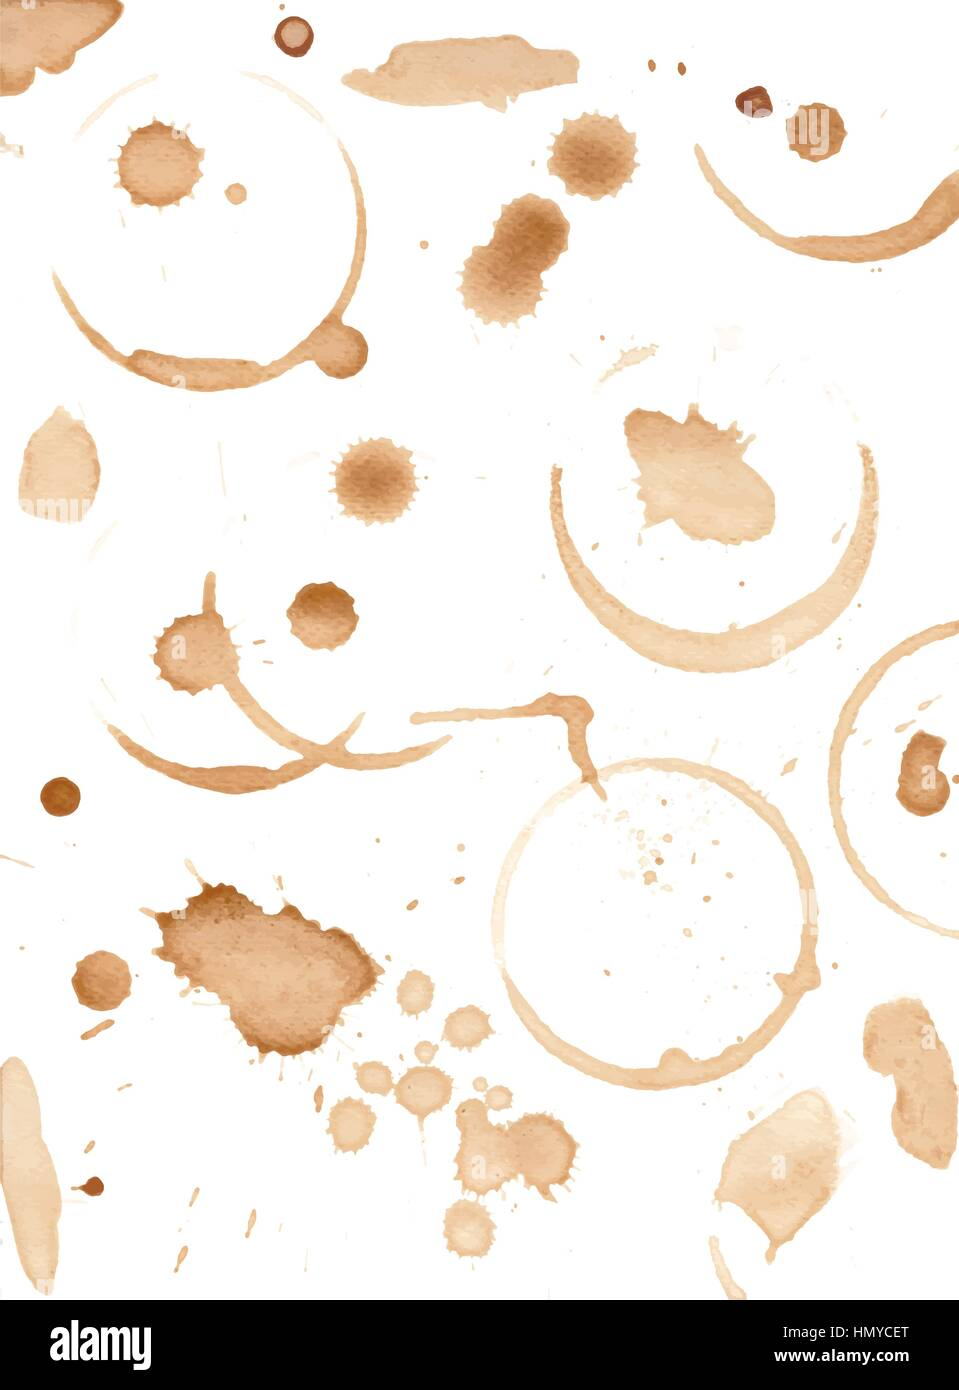 Set of variuos coffee stains isolated on white - Stock Vector